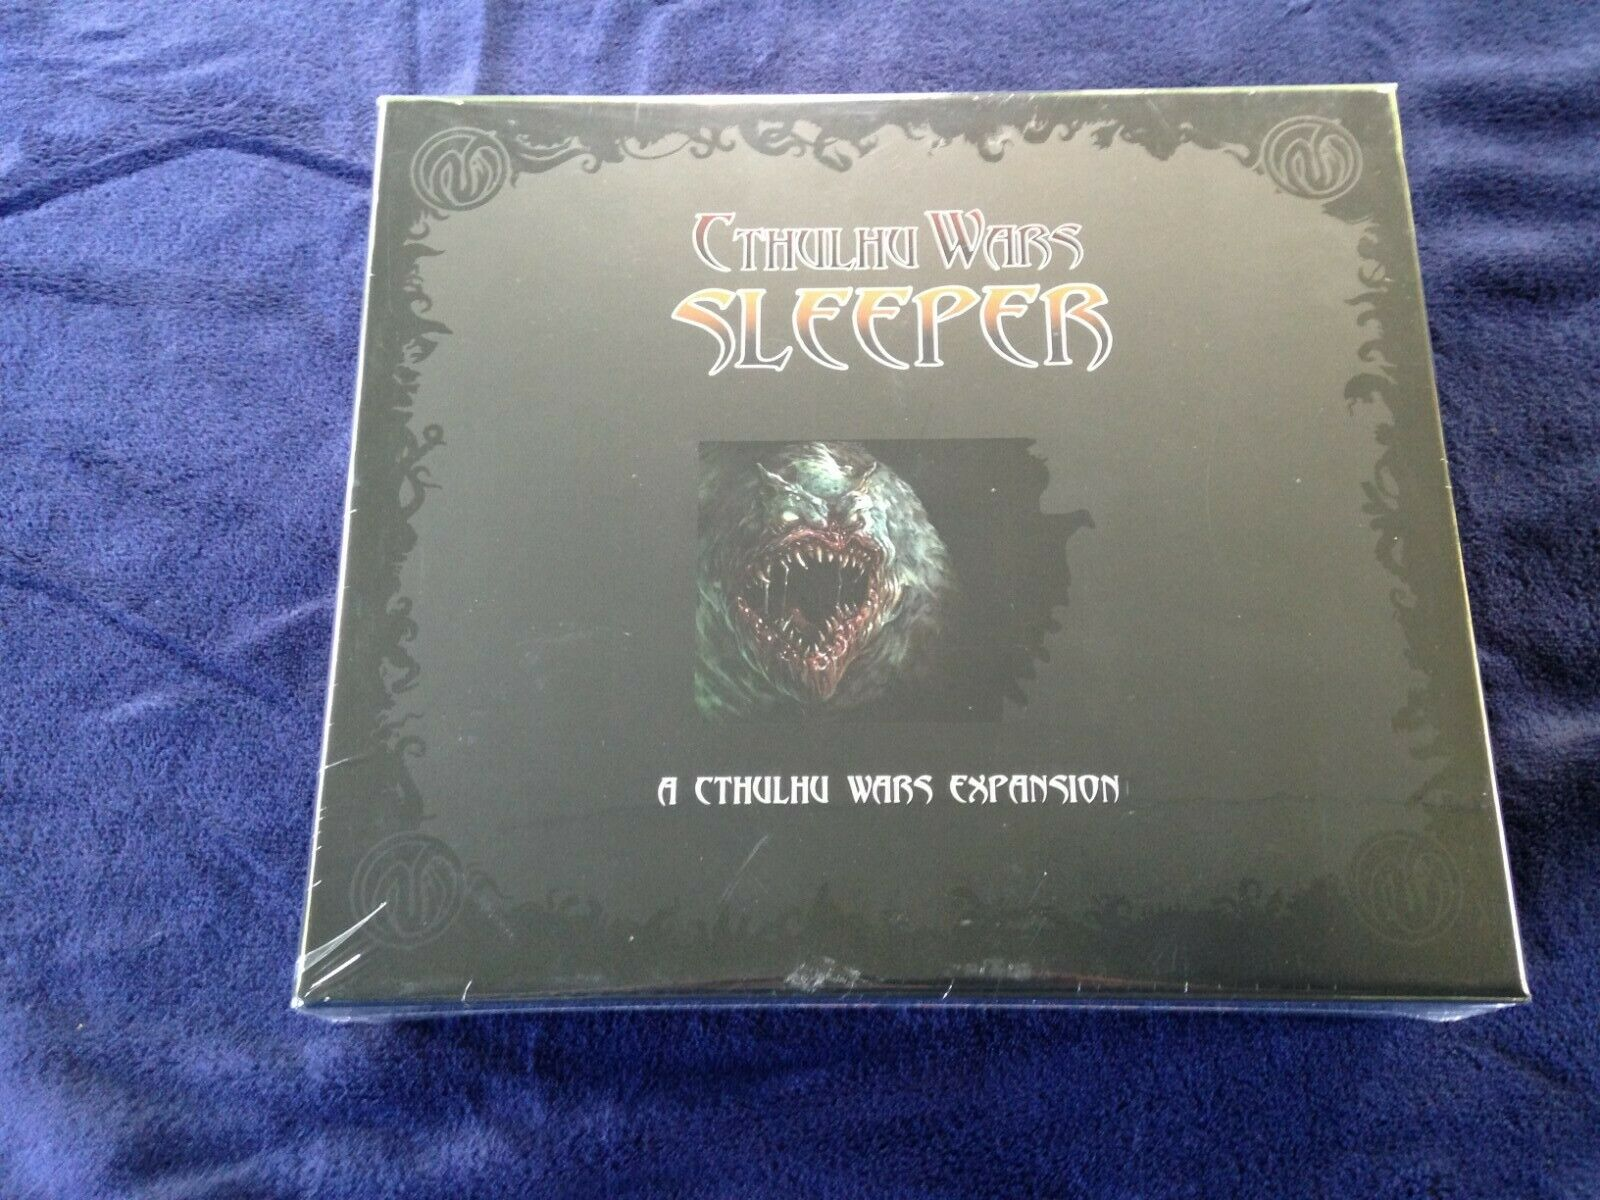 Cthulhu Wars Sleeper Expansion by Petersen Games